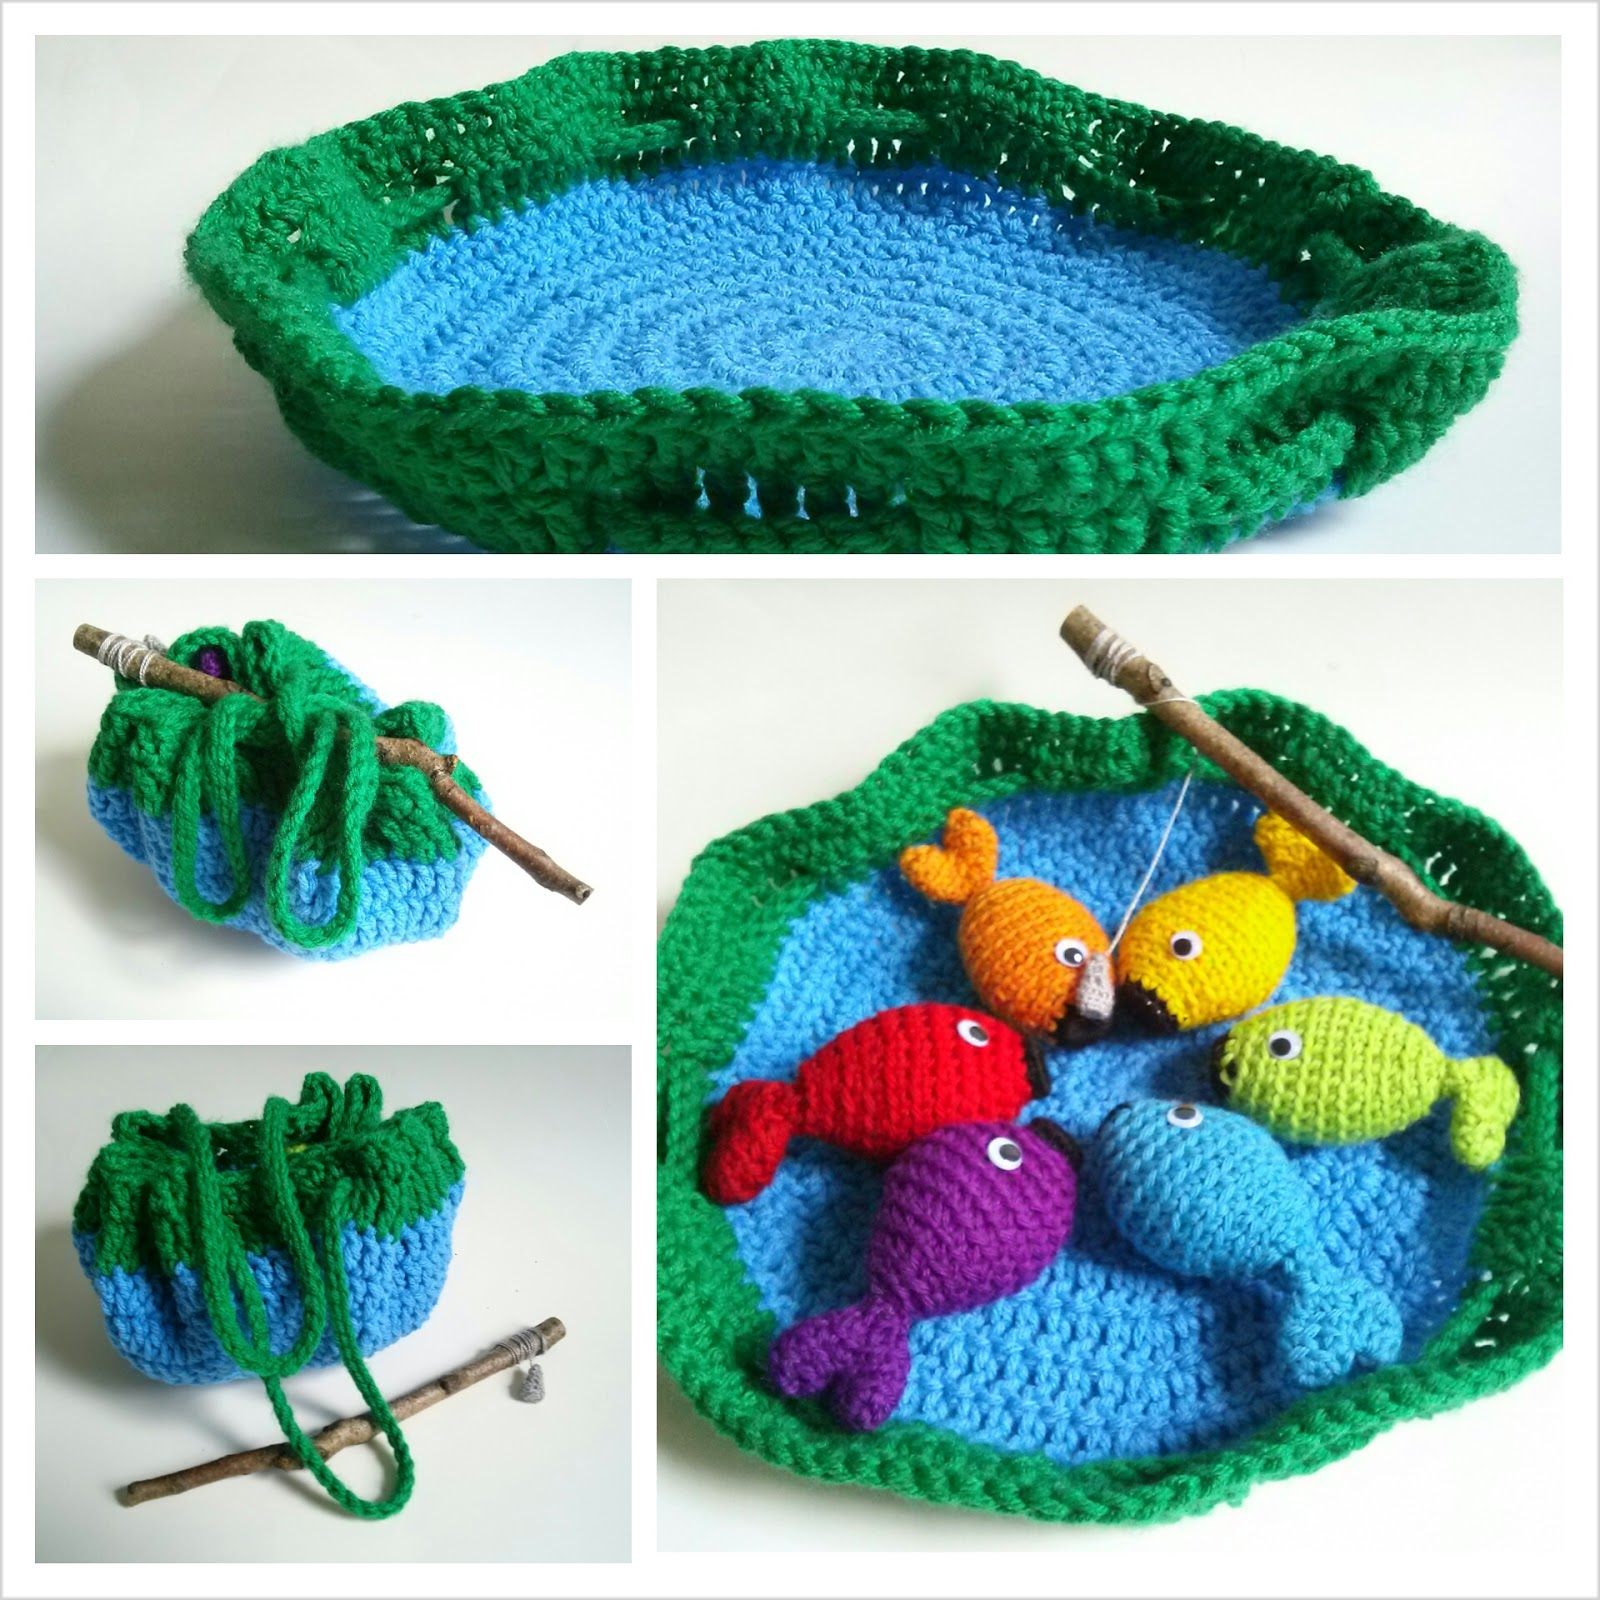 Free Crochet Patterns Games : Niccupp Crochet: Rainbow Fishing Game - Free Pattern